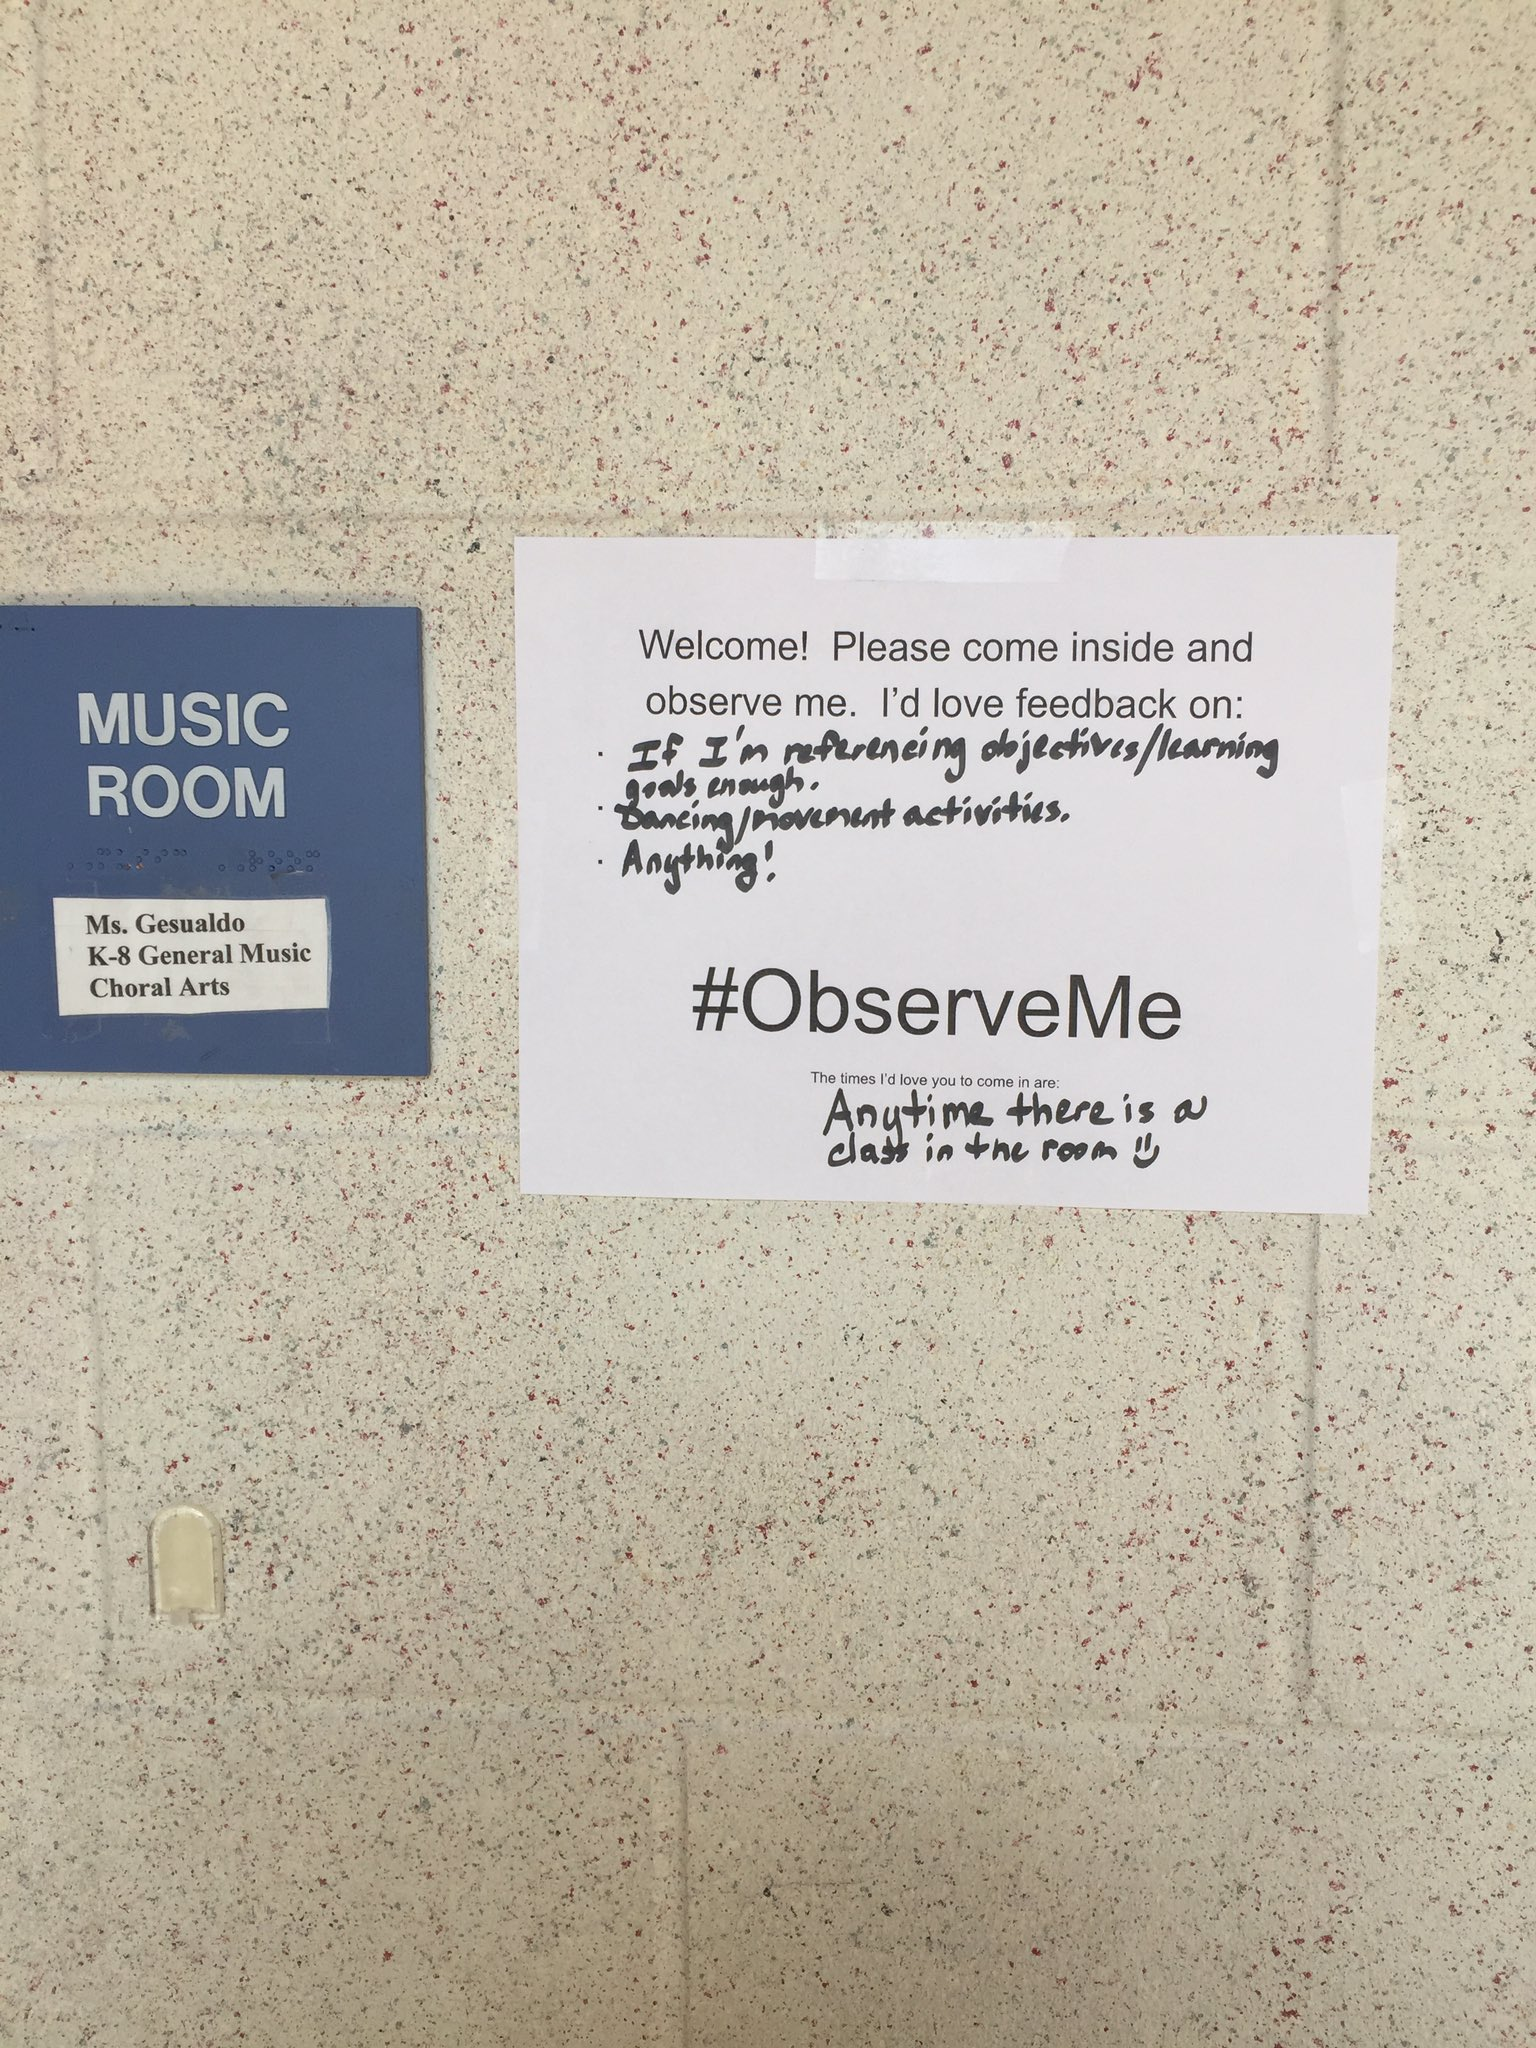 #ObserveMe why not give something new a try? https://t.co/QJwzowL9RT